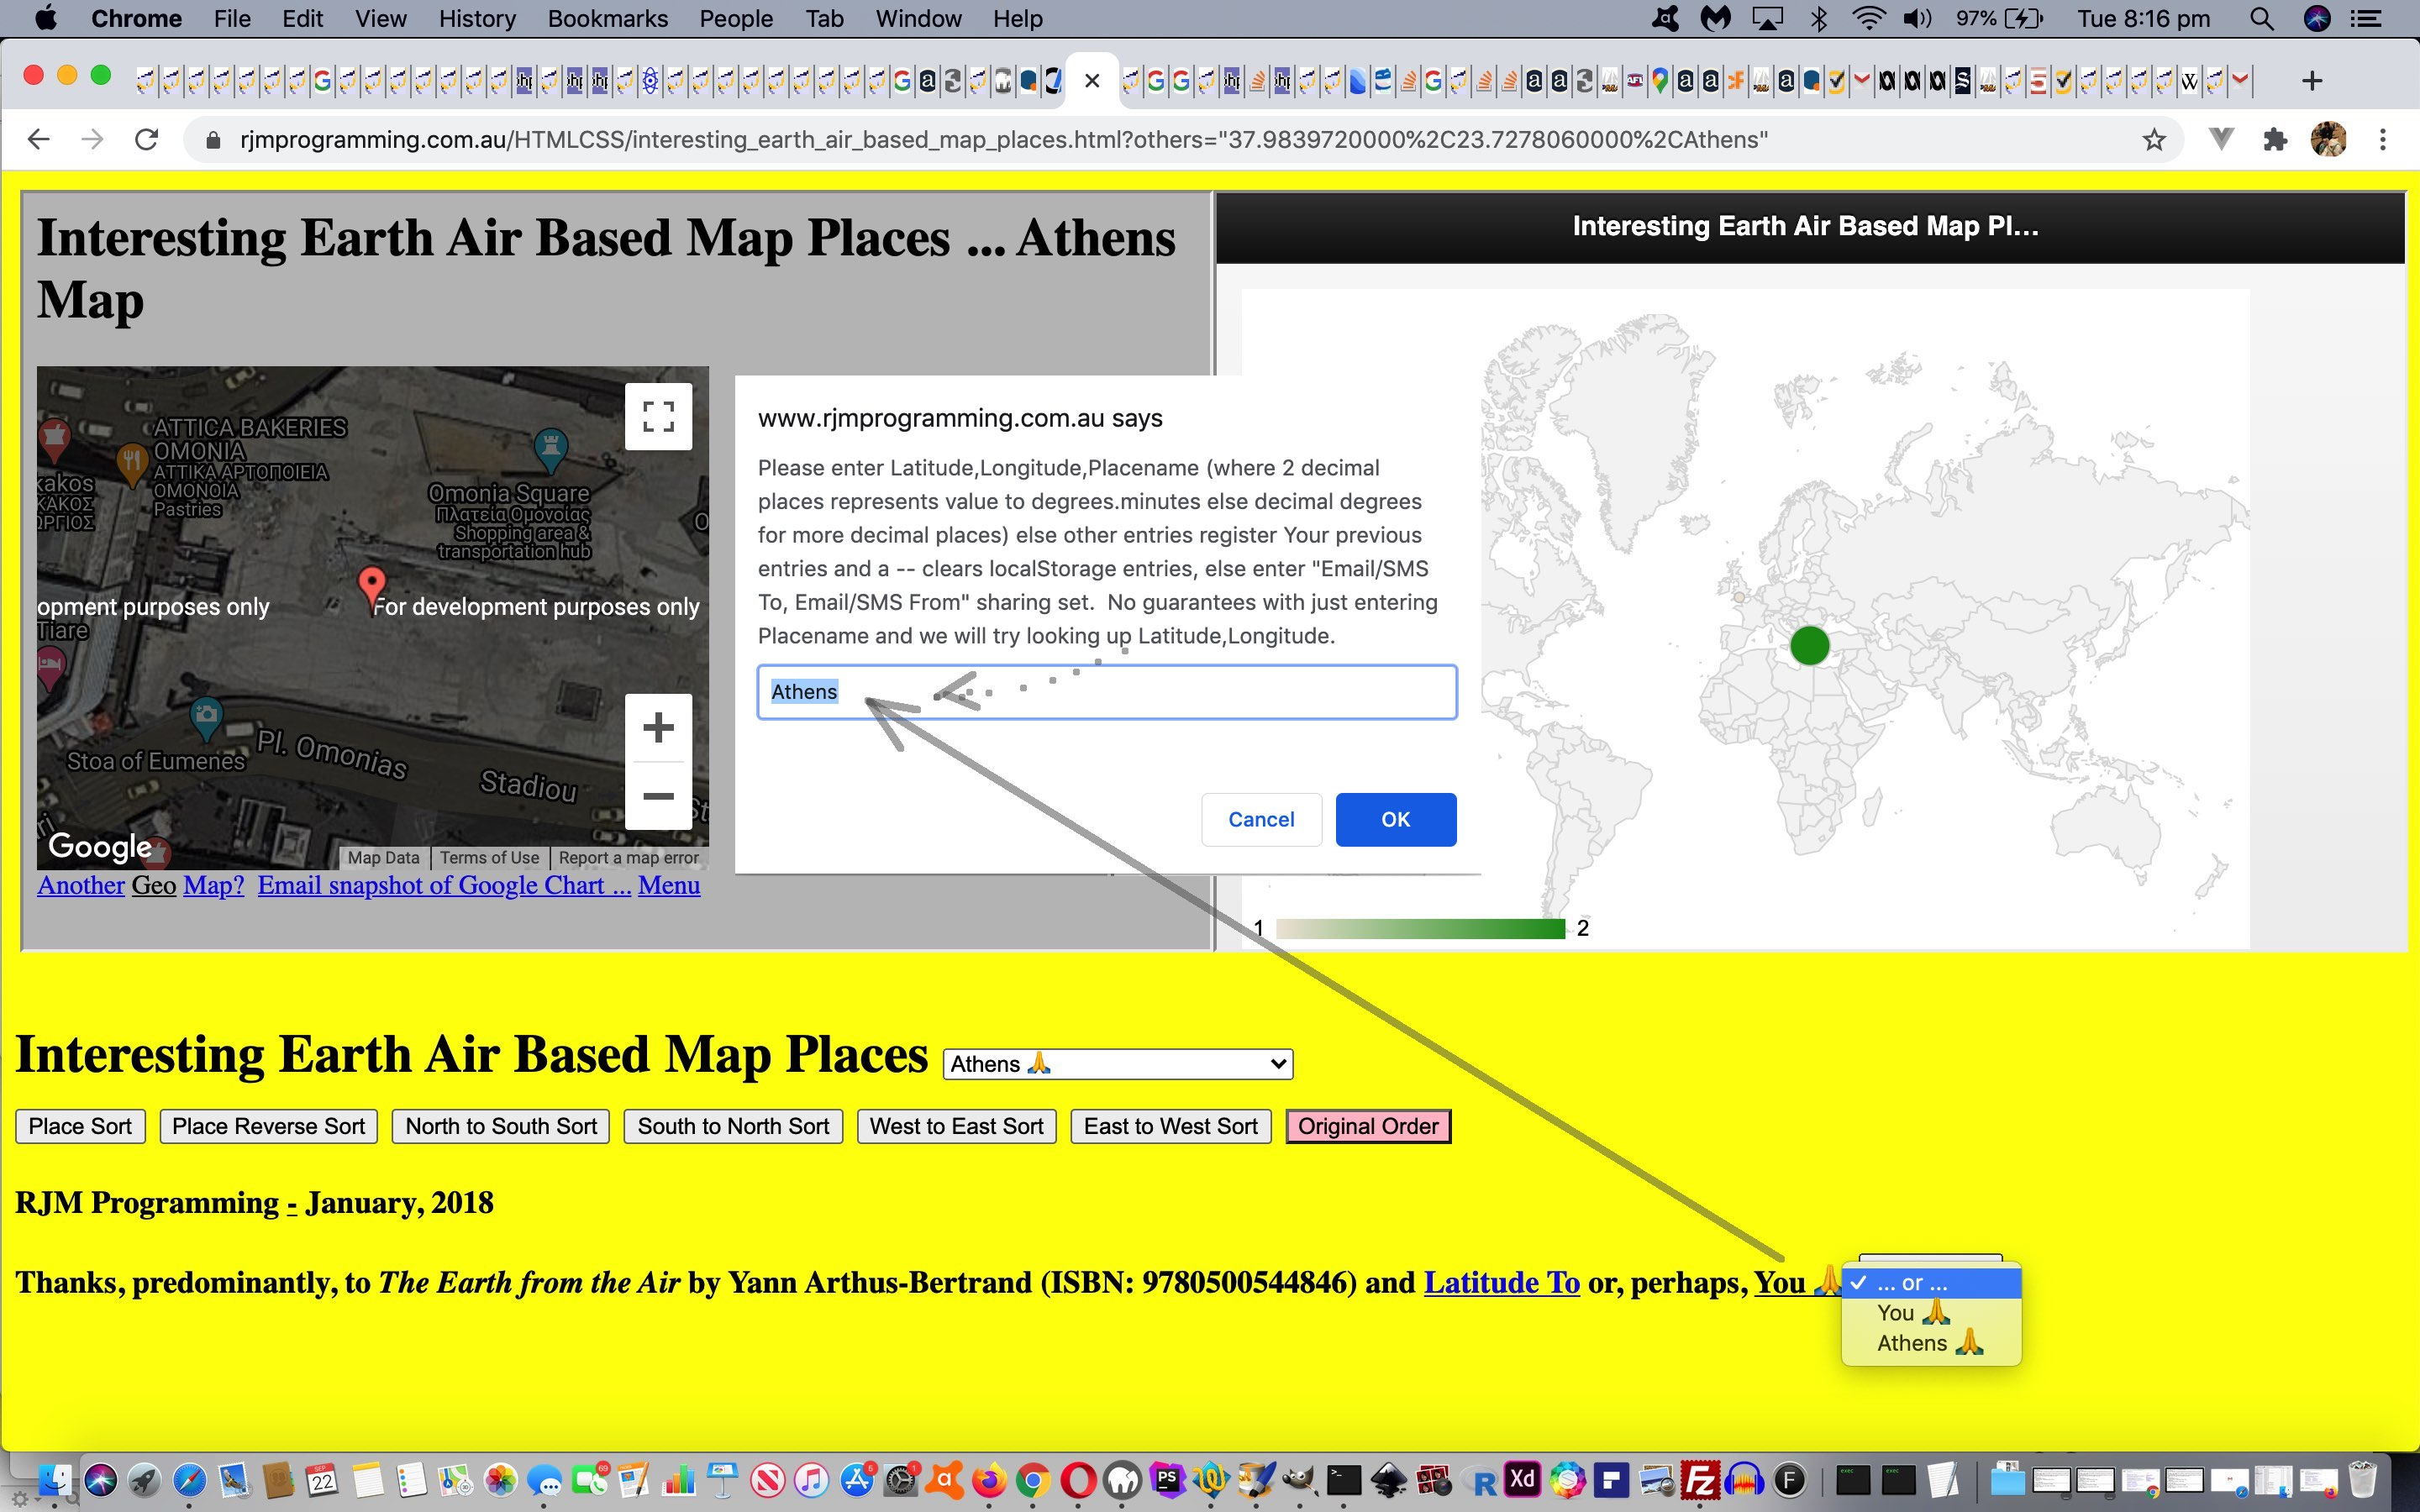 Personalizing Interesting Places Ajax FormData Tutorial